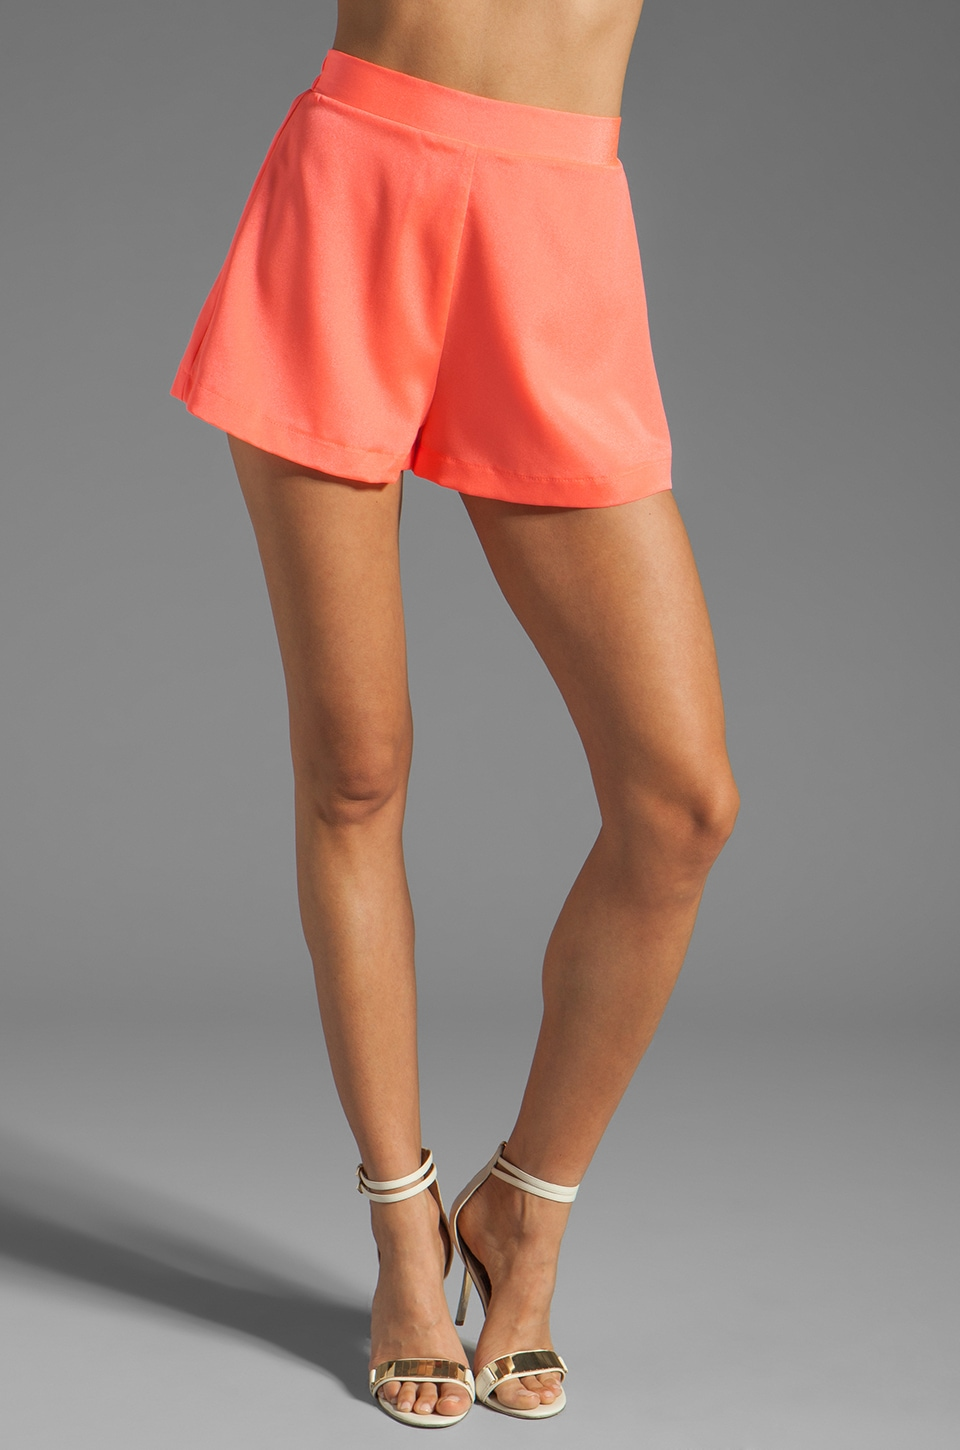 Naven Circle Shorts in Neon Salmon